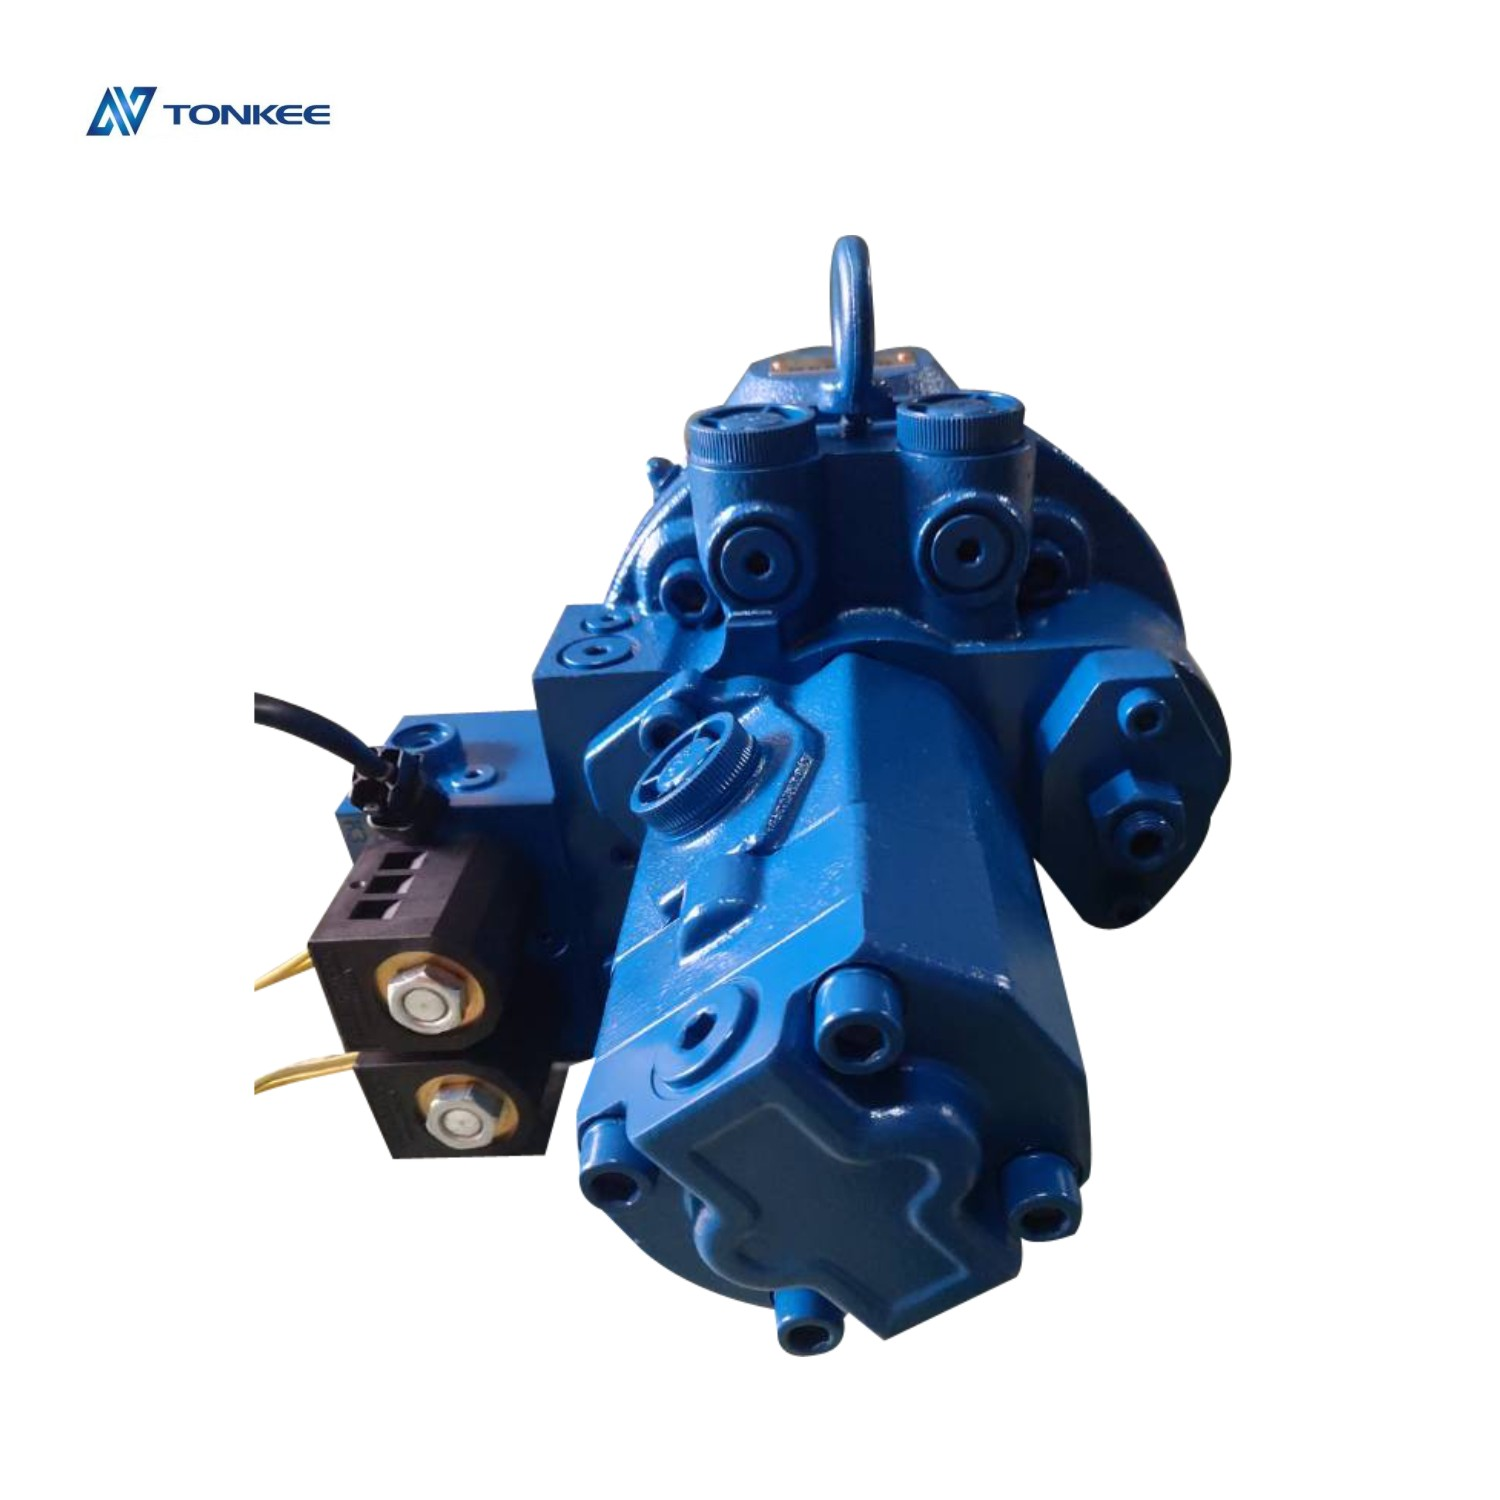 NEW 401-00222B excavator main pump Doosan S55-V hydraulic pump for excavation